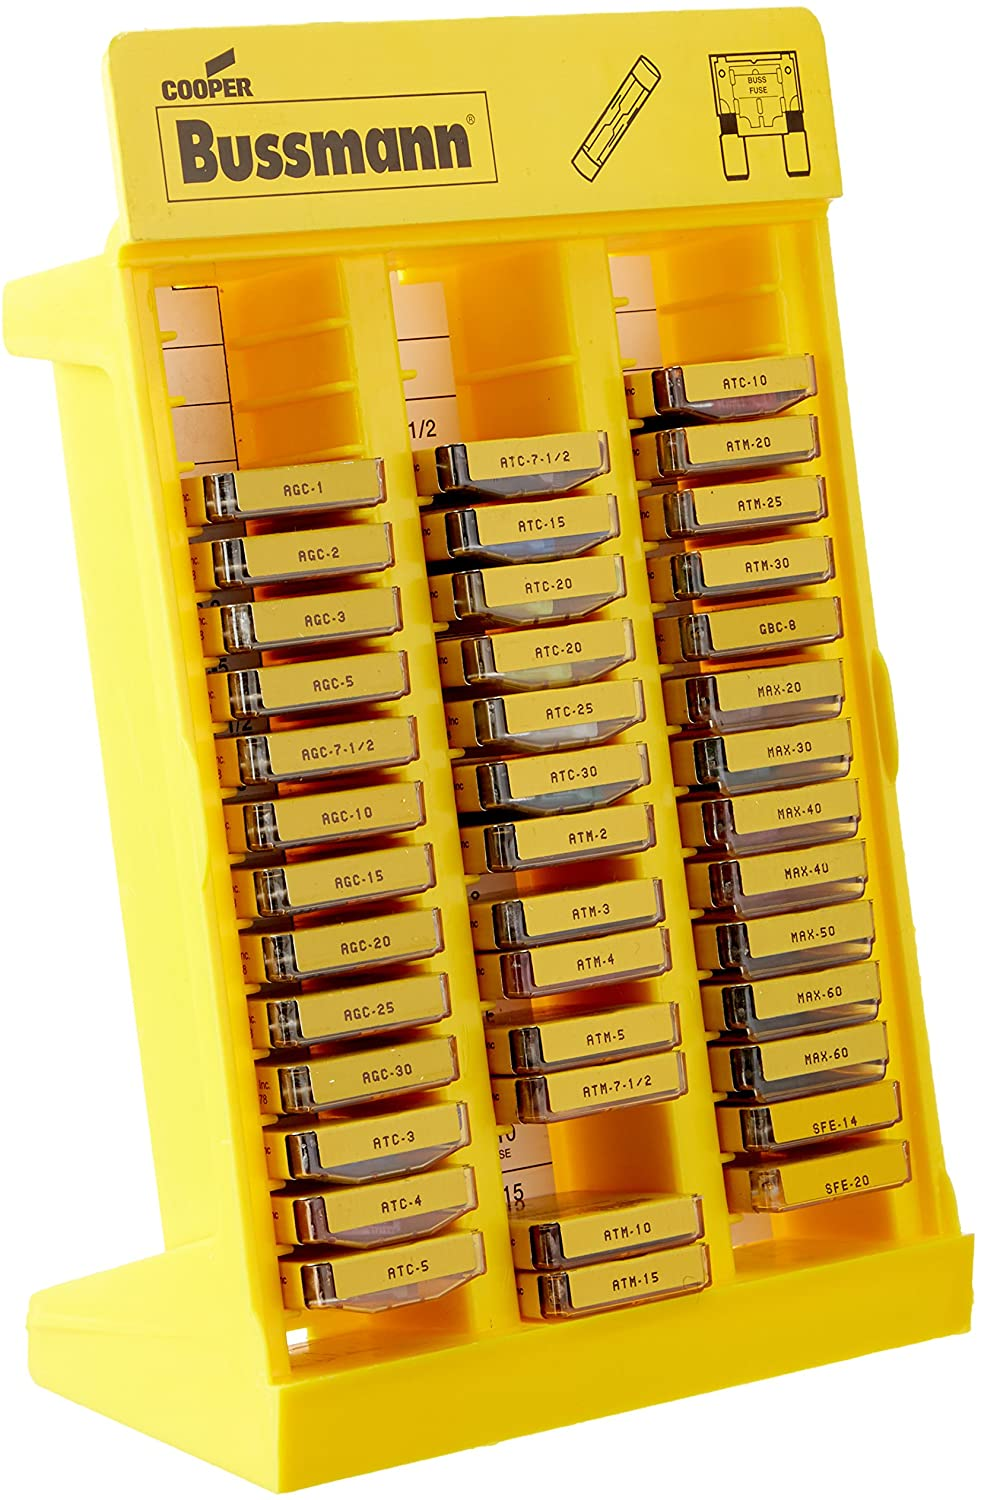 Bussmann No.200 Glass Tube and Blade Type Fuse Display Stand - 172 Fuses